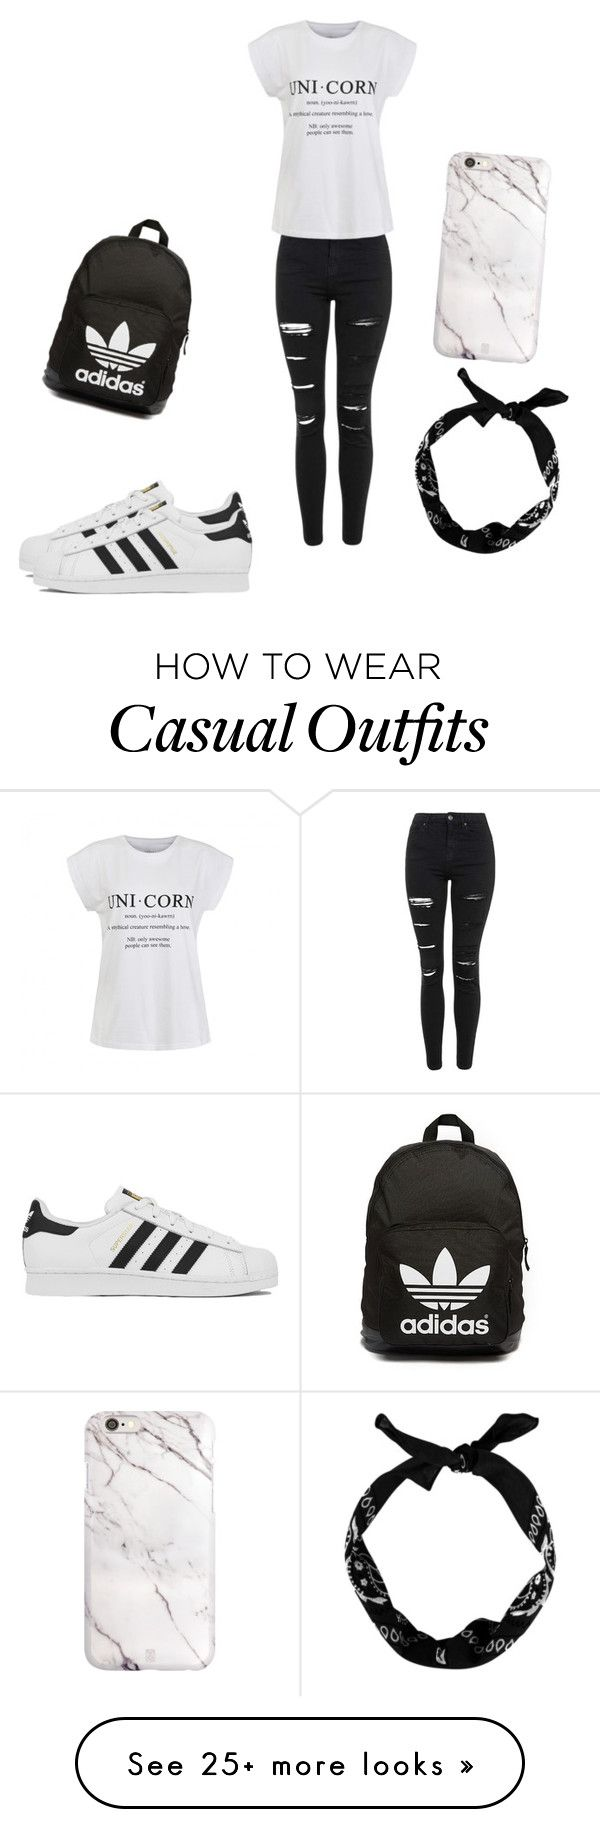 """""""casual"""" by elizagaspar on Polyvore featuring Topshop, Ally Fashion, adidas, adidas Originals, women's clothing, women's fashion, women, female, woman and misses"""